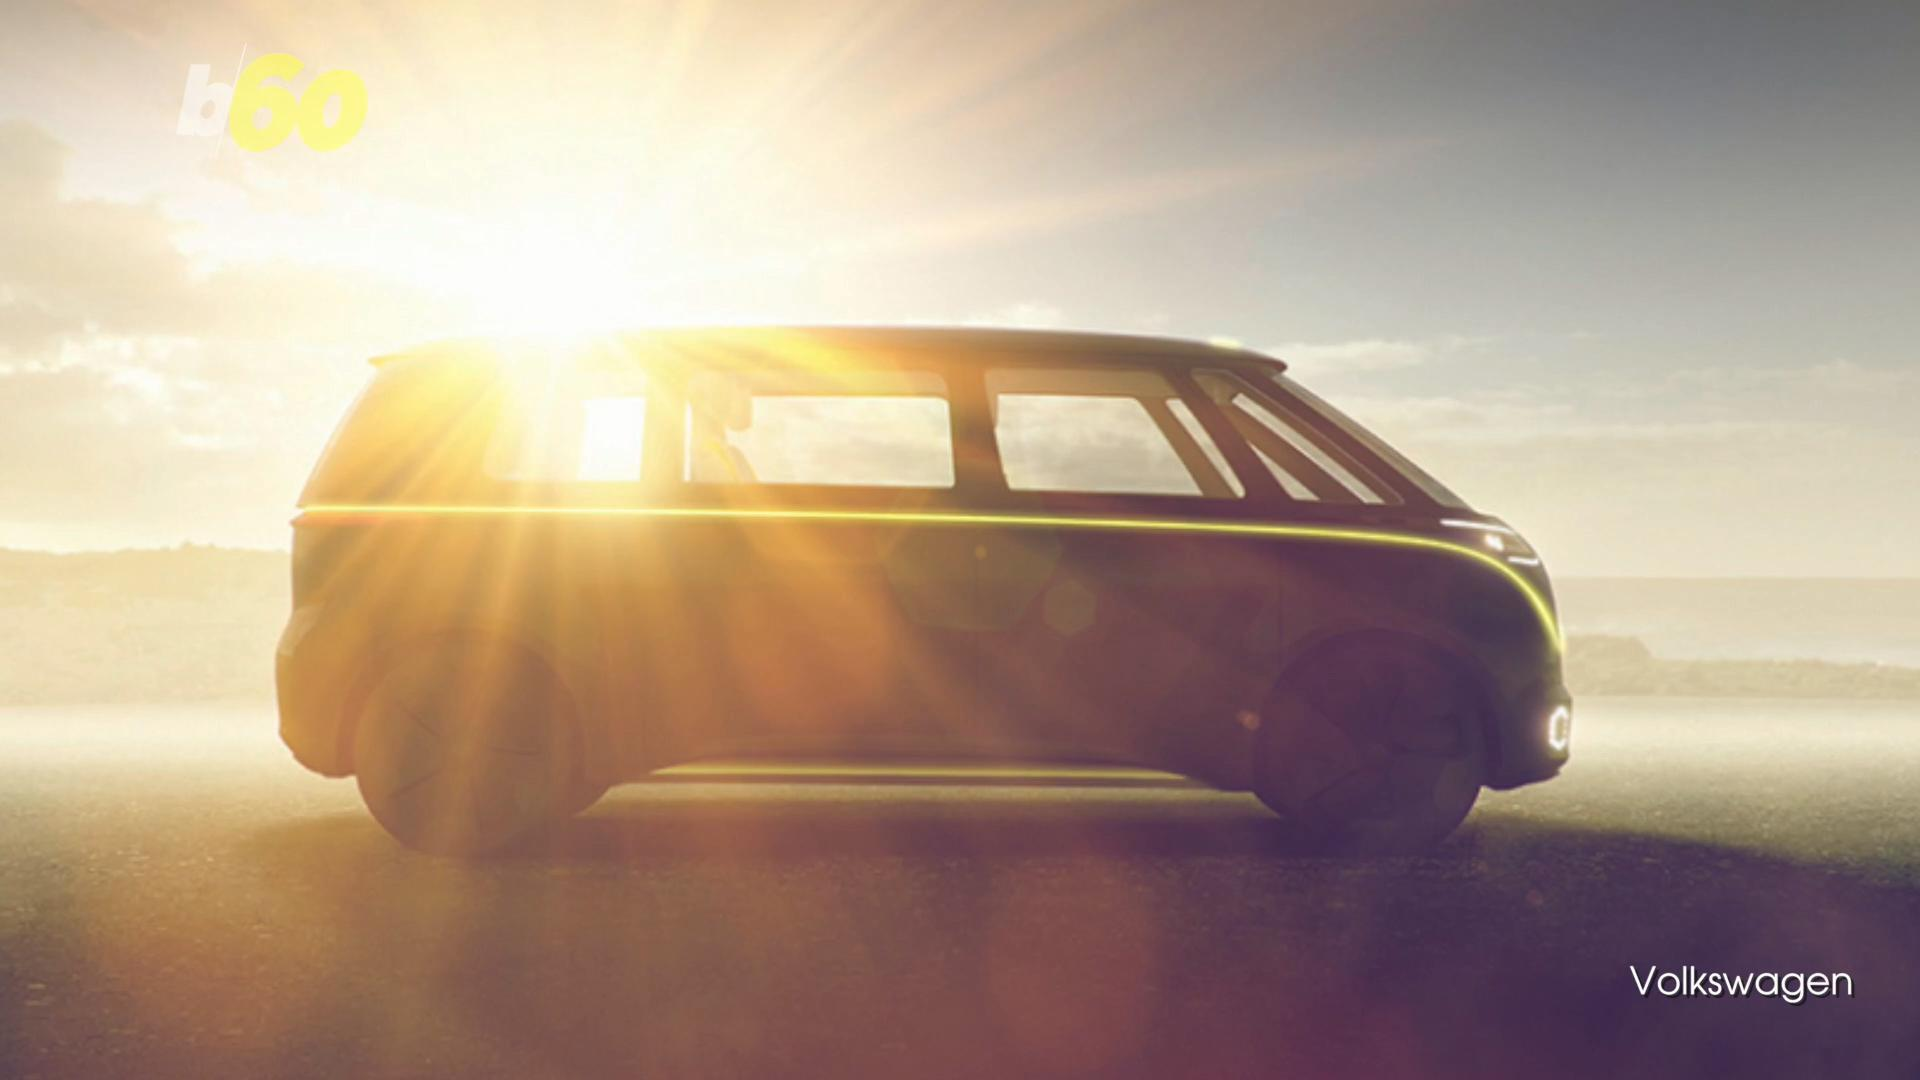 From Hippie to Hipster: The New VW Bus Will Be Electric